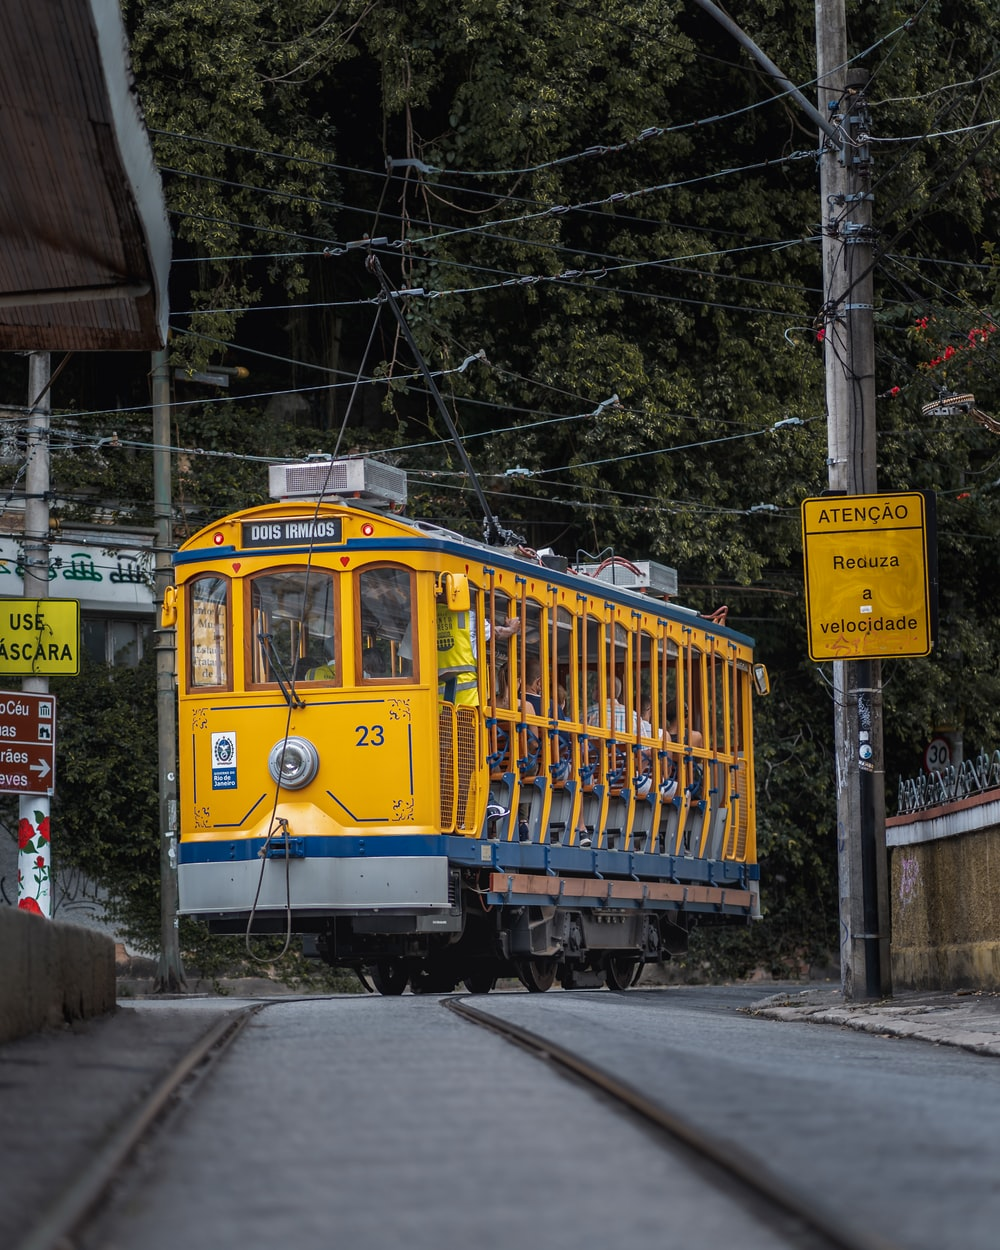 yellow and white tram on the street